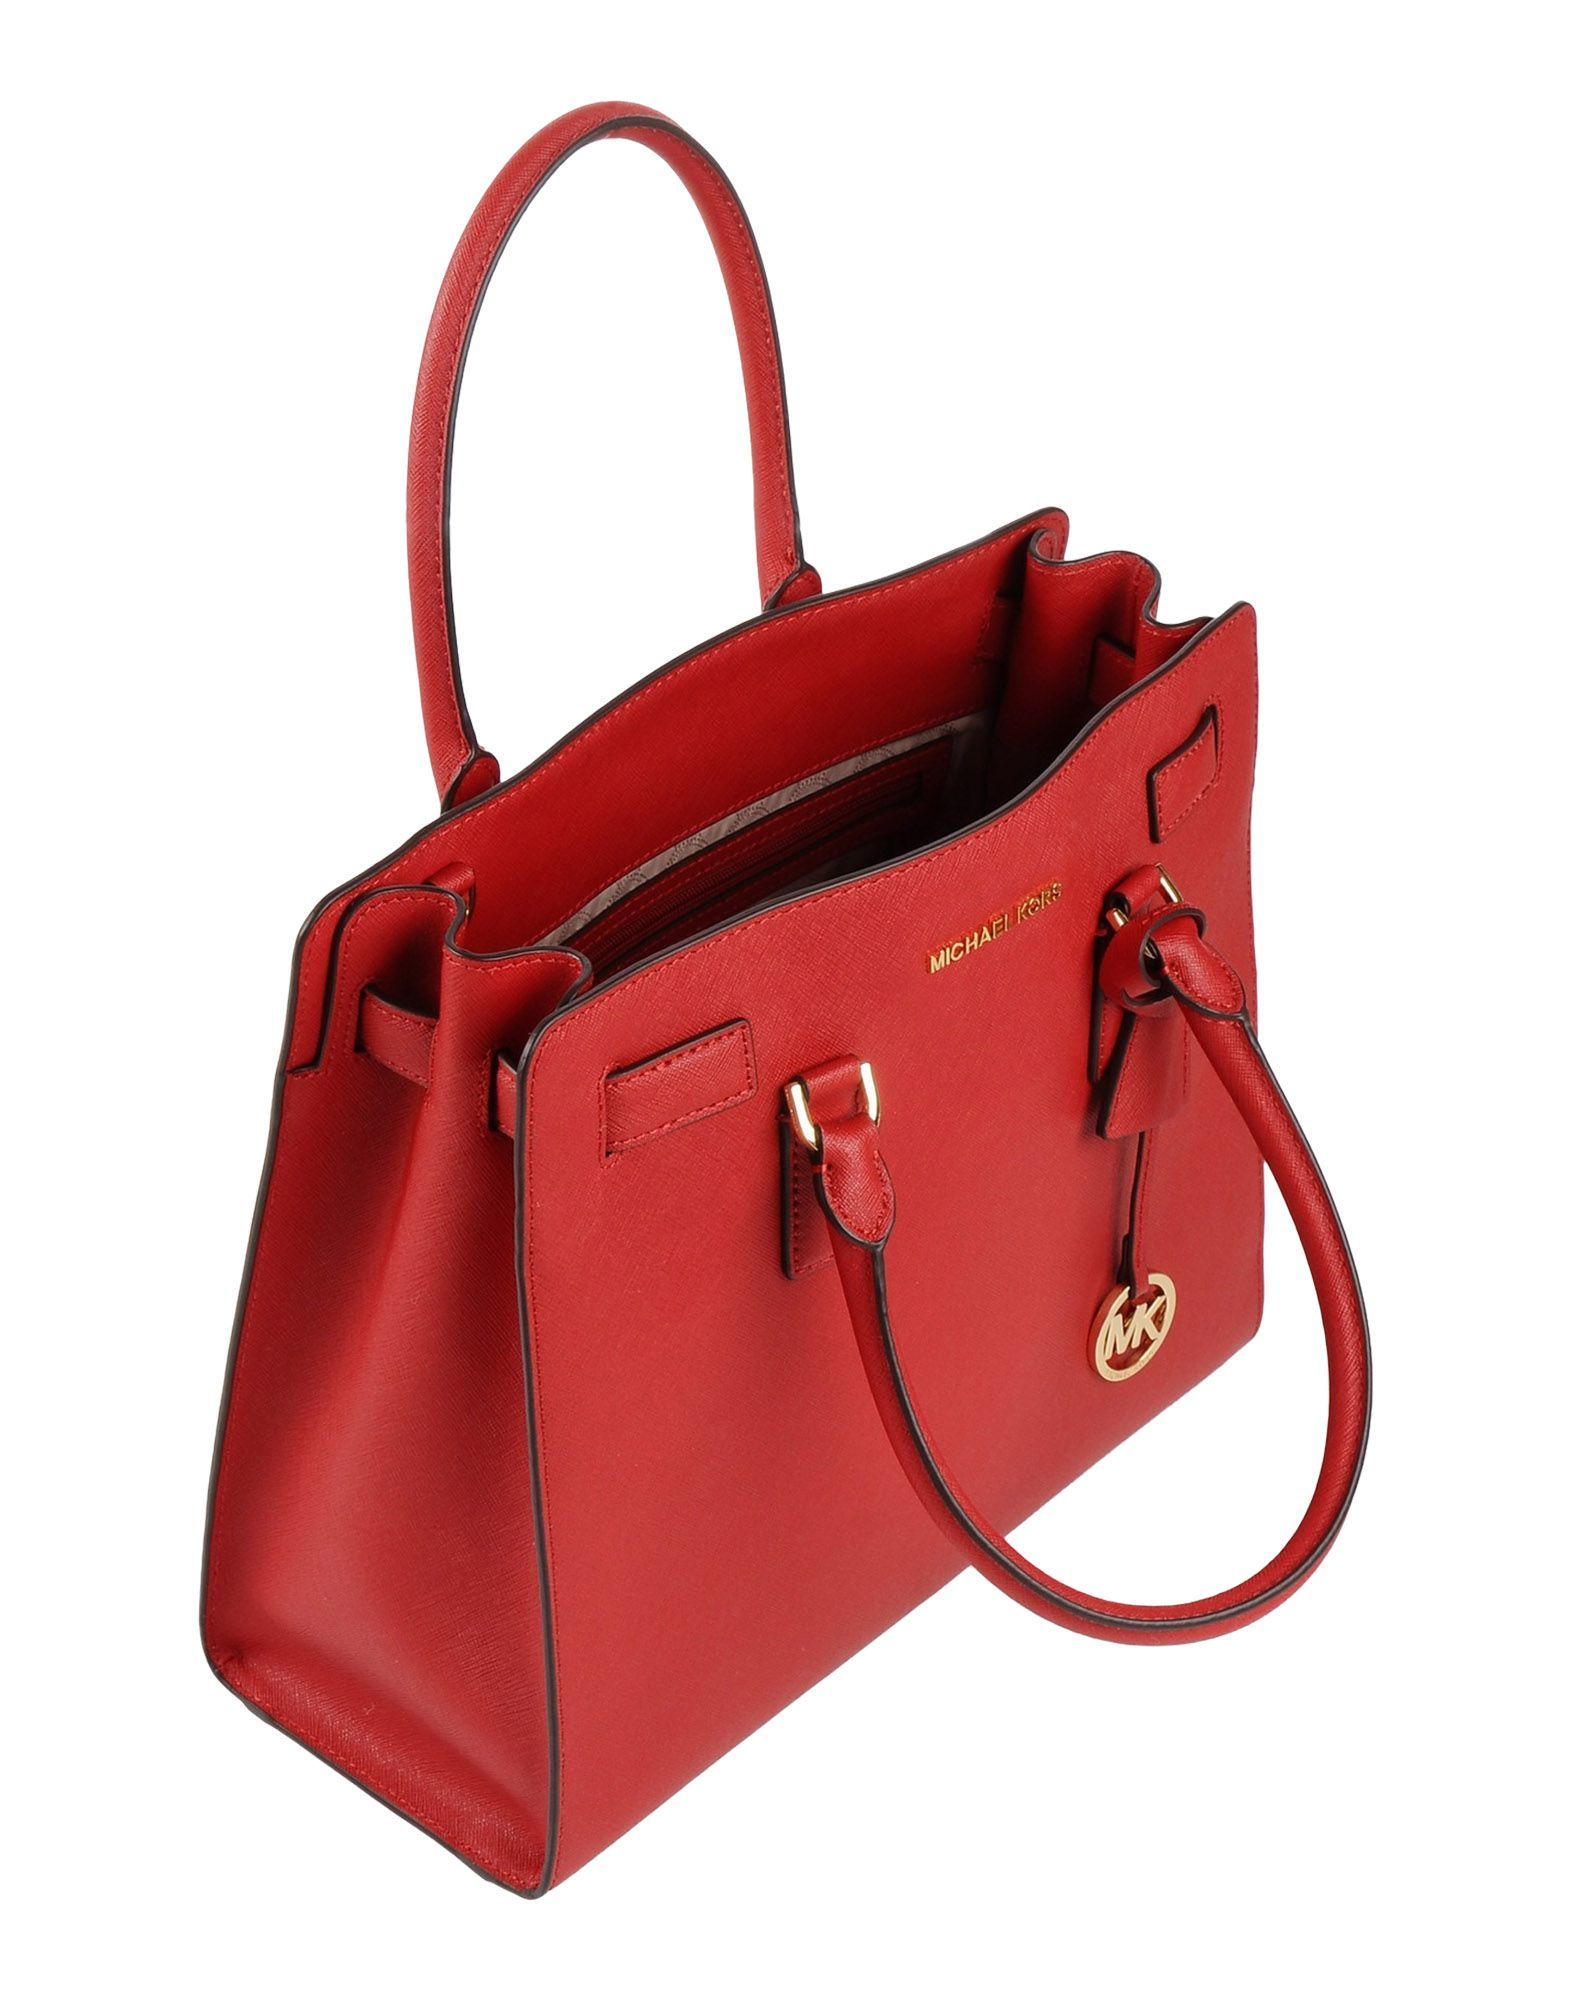 To give that outfit a pop of color - Michael Kors bag